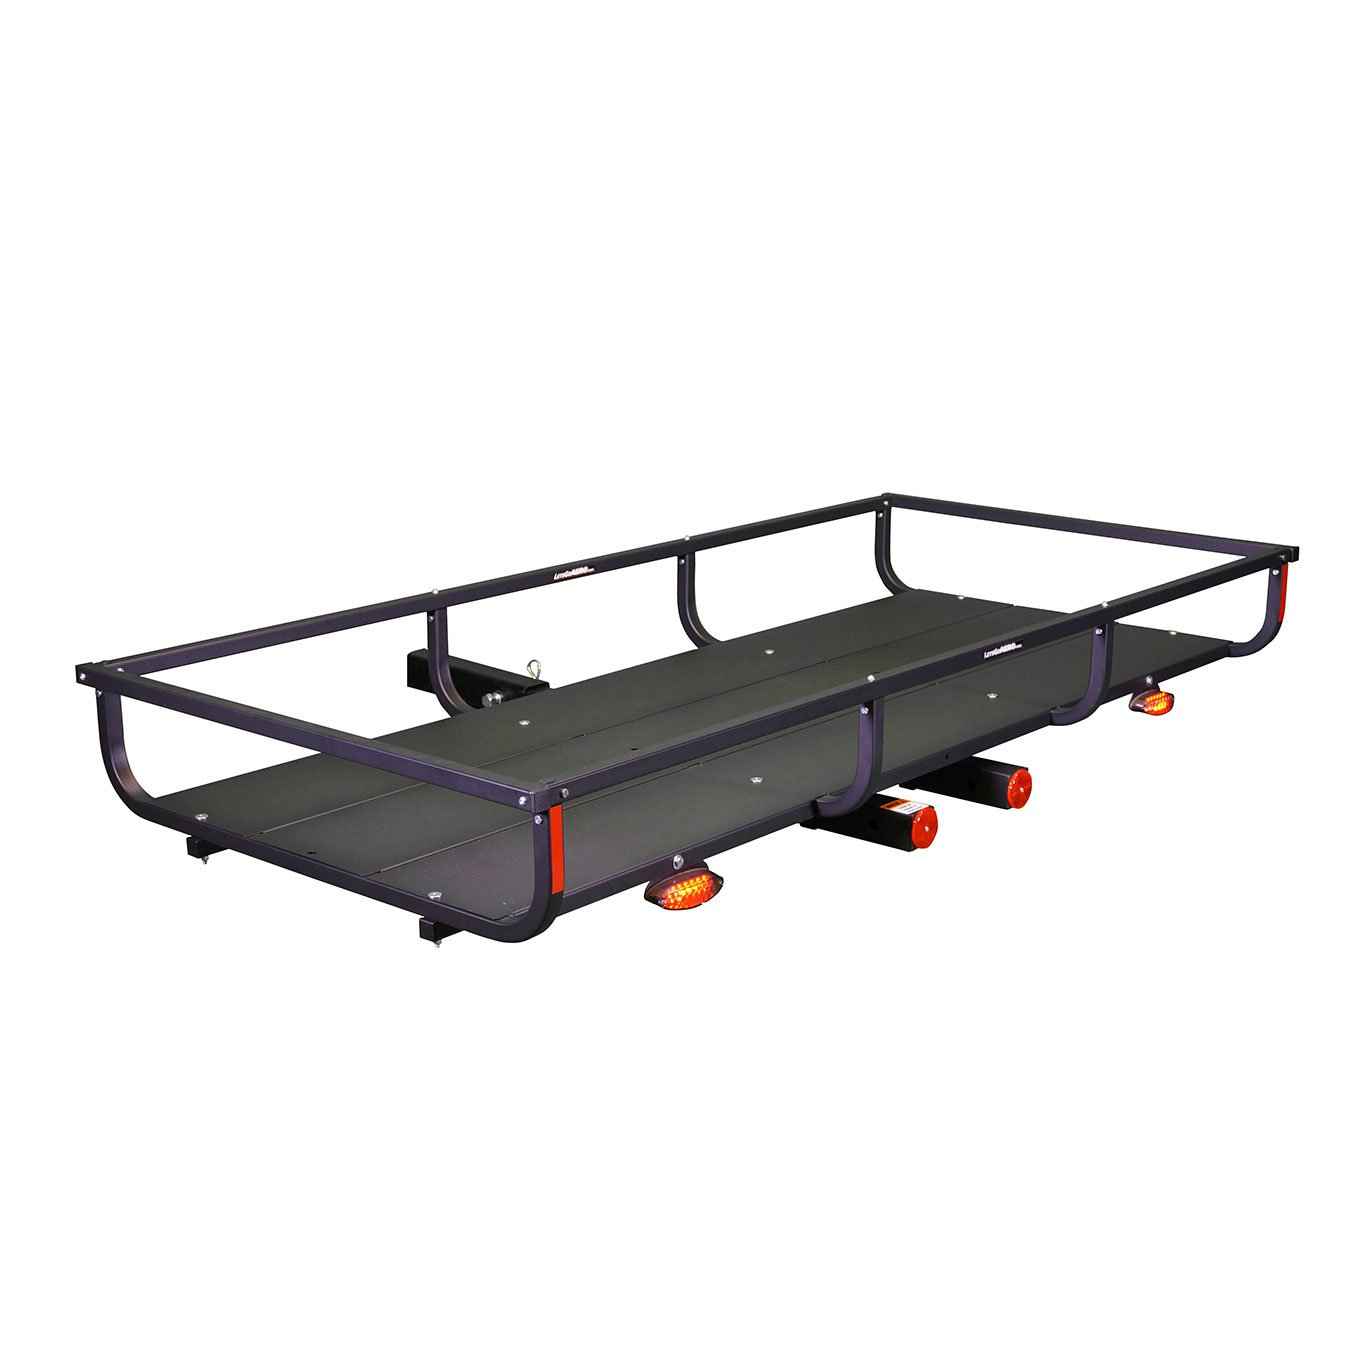 Let's Go Aero GearCage FP6 Slideout Hitch Rack with LED 72in x 32in x 7in by Let's Go Aero